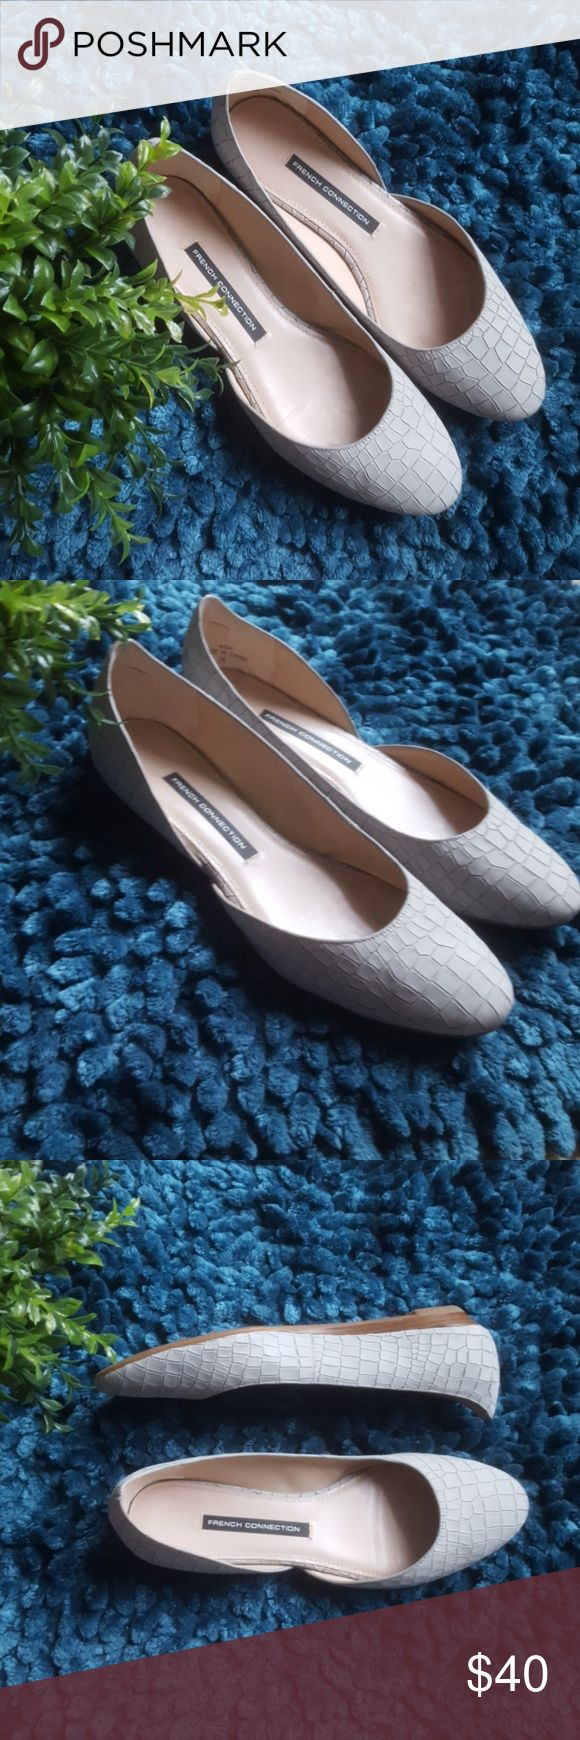 French Connection Asia Leather Flats!!! Beautiful light grey textured leather flats by French Connection. Gently used, but in excellent condition. Well made and very comfortable. Comes from a smoke-free pet-free home. Fast shipping! NO TRADES! French Connection Shoes Flats & Loafers